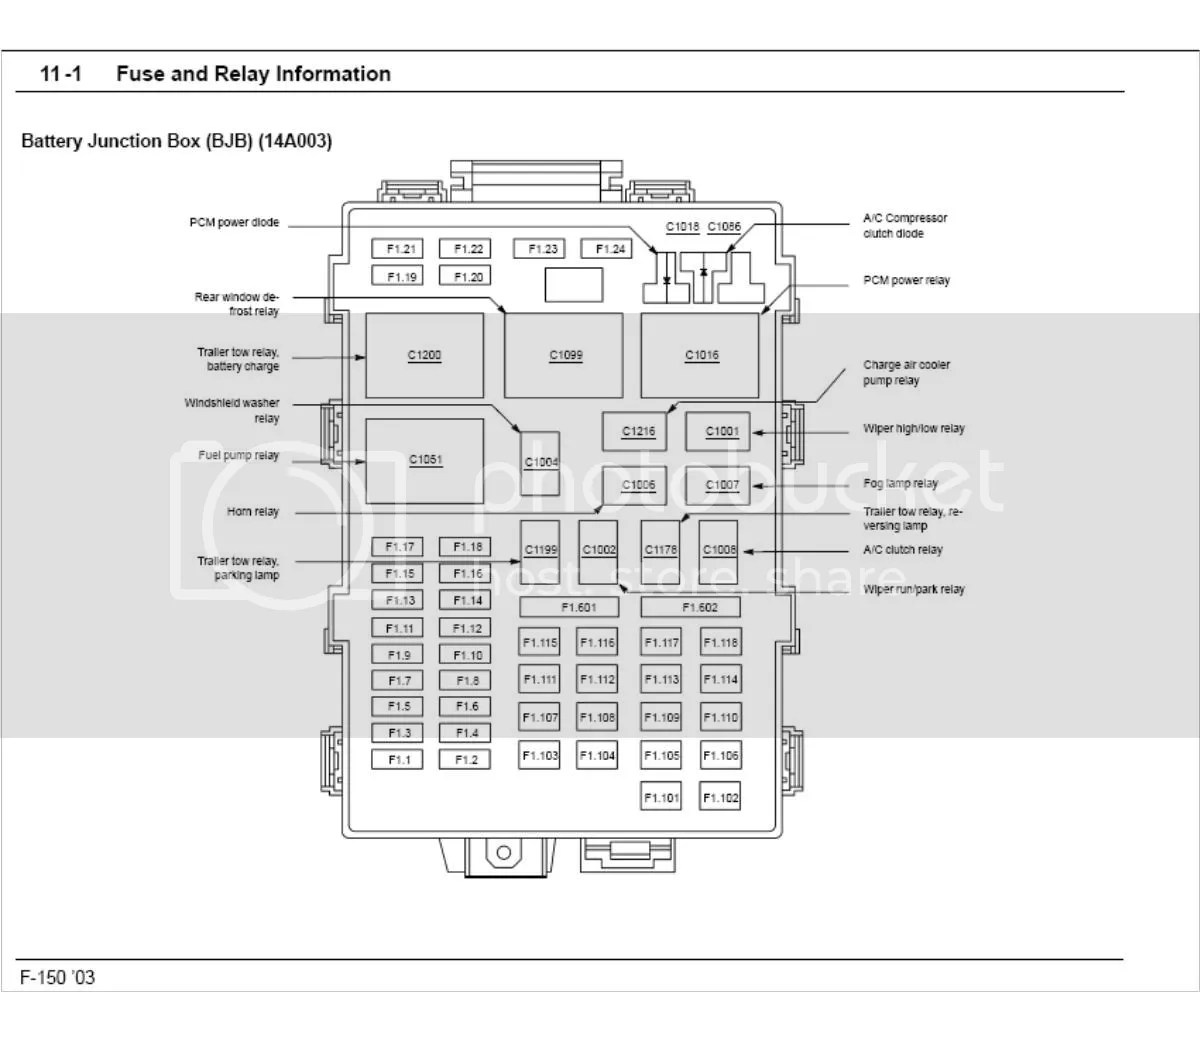 hight resolution of 2001 ford f 150 supercrew fuse box diagram wiring diagram sort 2001 ford f150 fuse box diagram under dash 2001 ford fuse box diagram